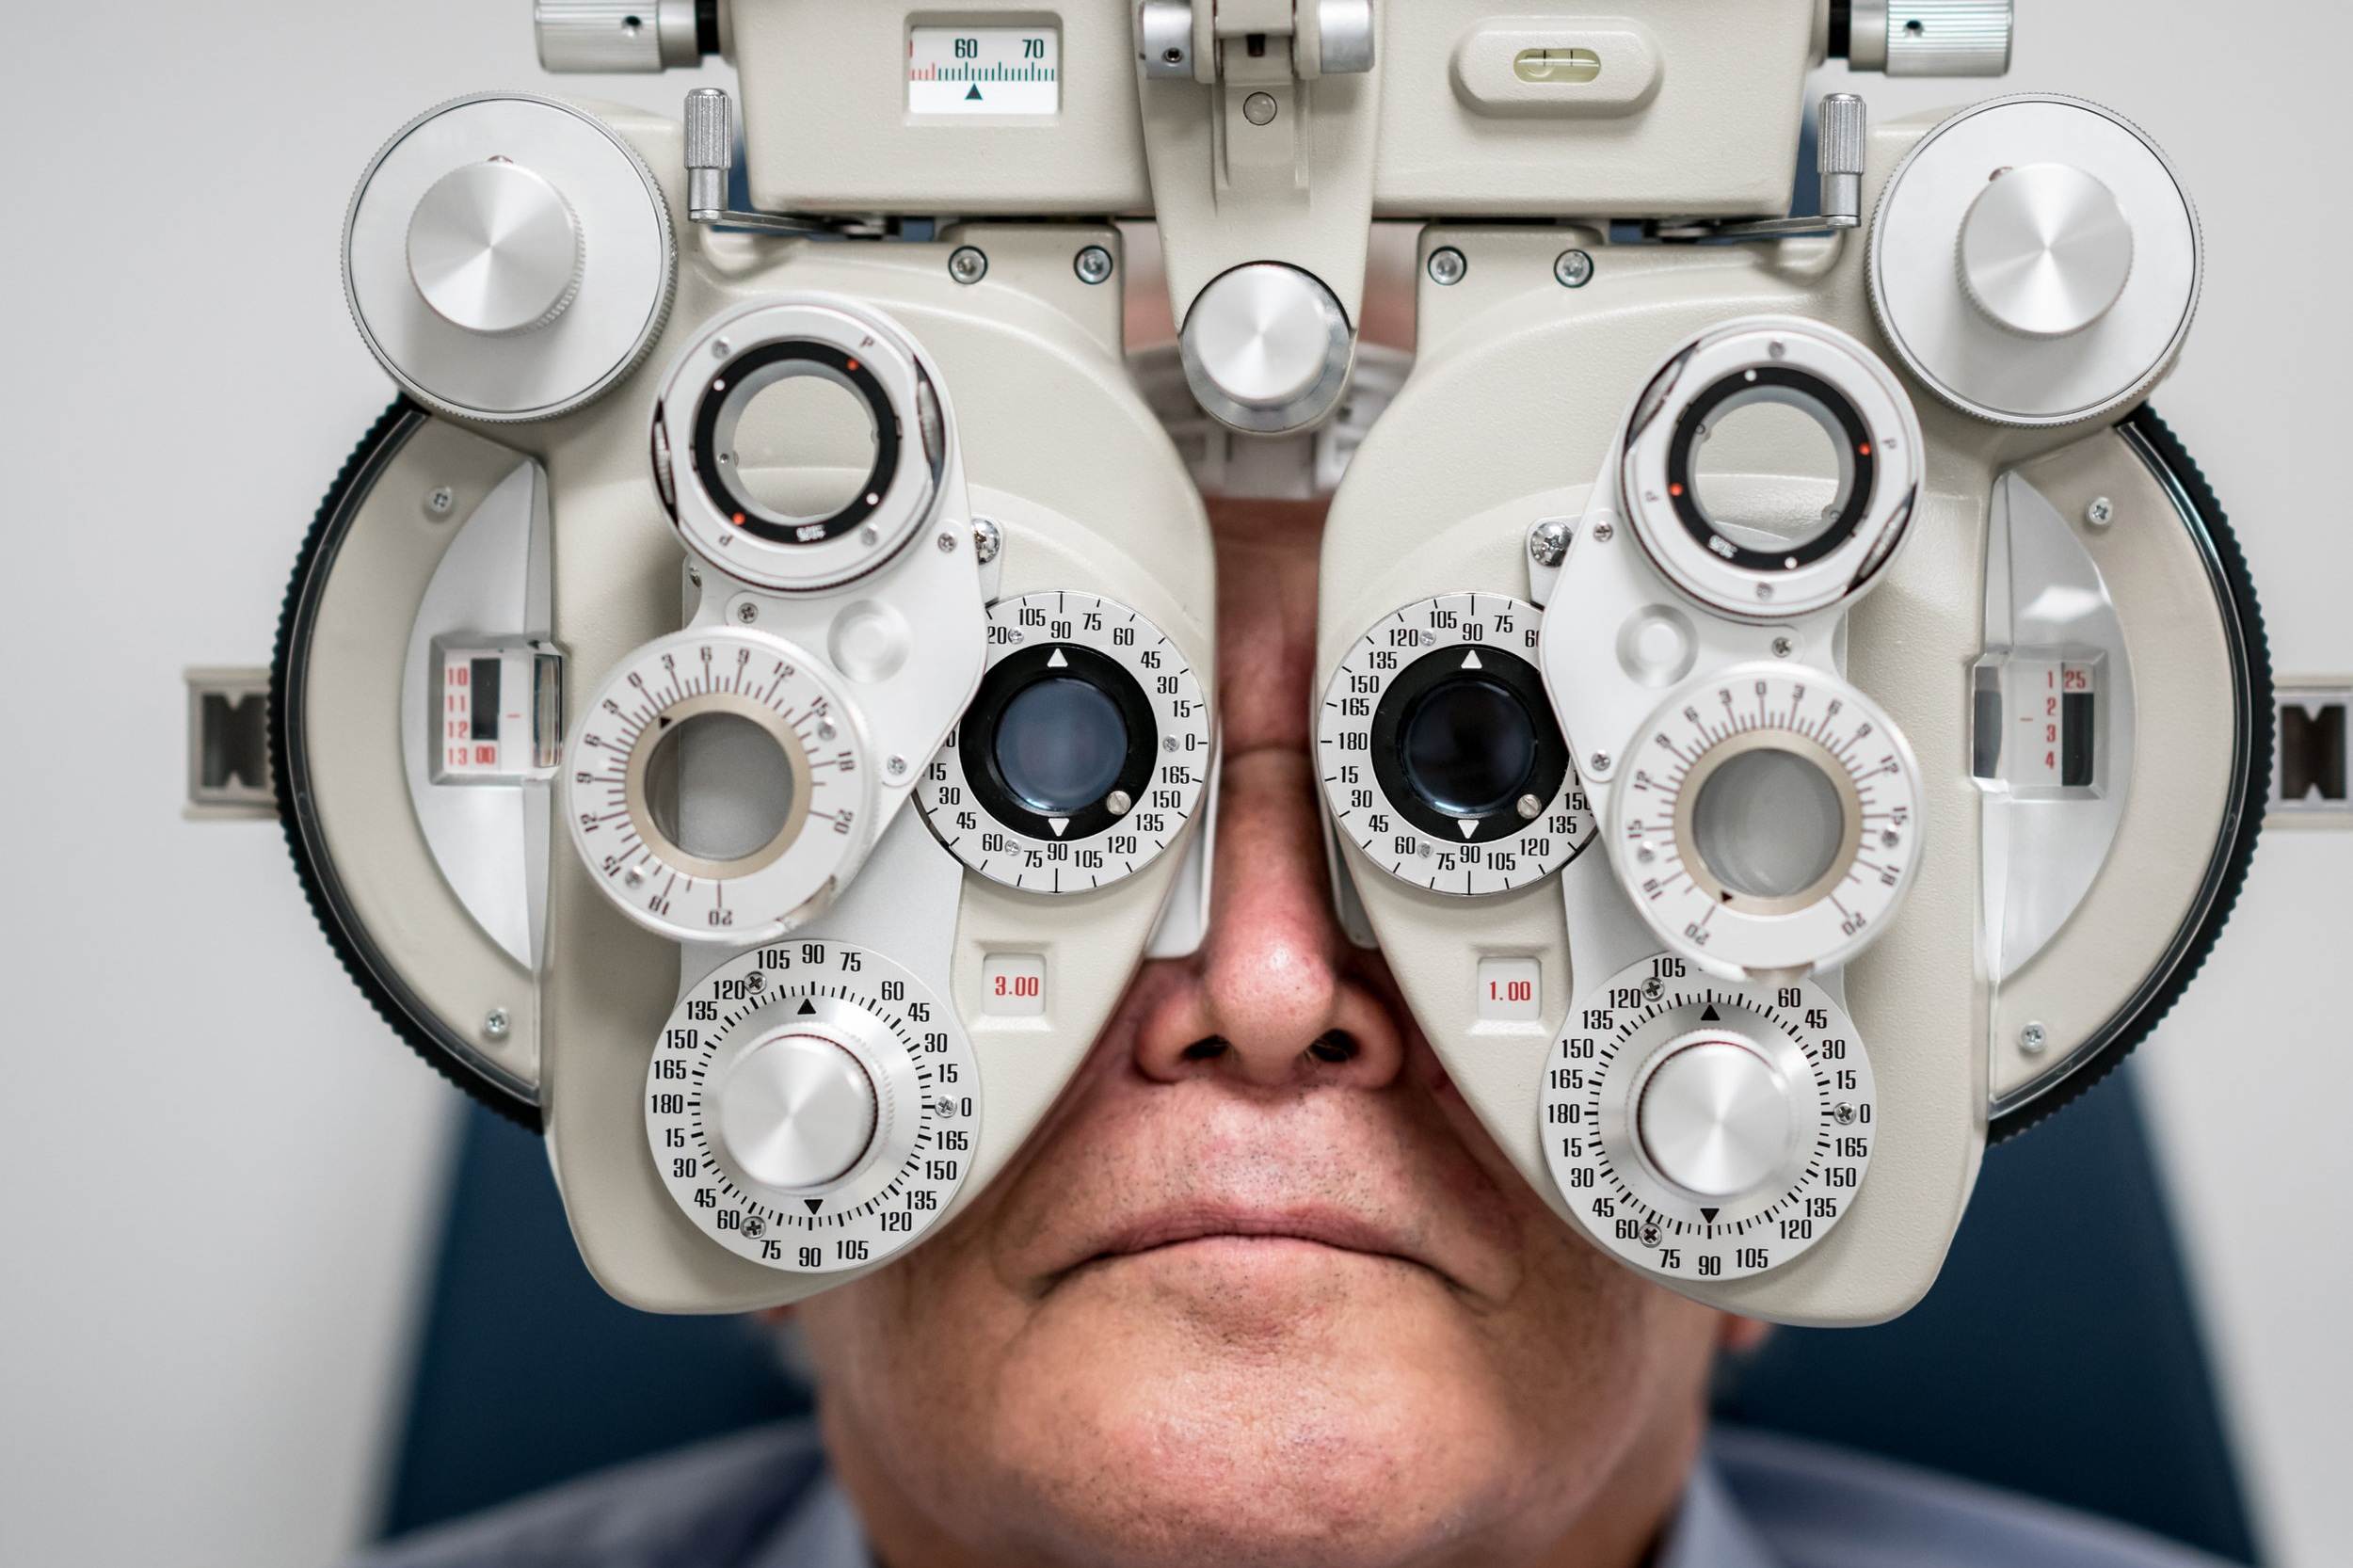 On-Site Optometry - Institutional Eye Care LLC can provide in state licensed optometry services to meet the requirements for routine refractive examinations on-site at most correctional facilities, anywhere in the country.